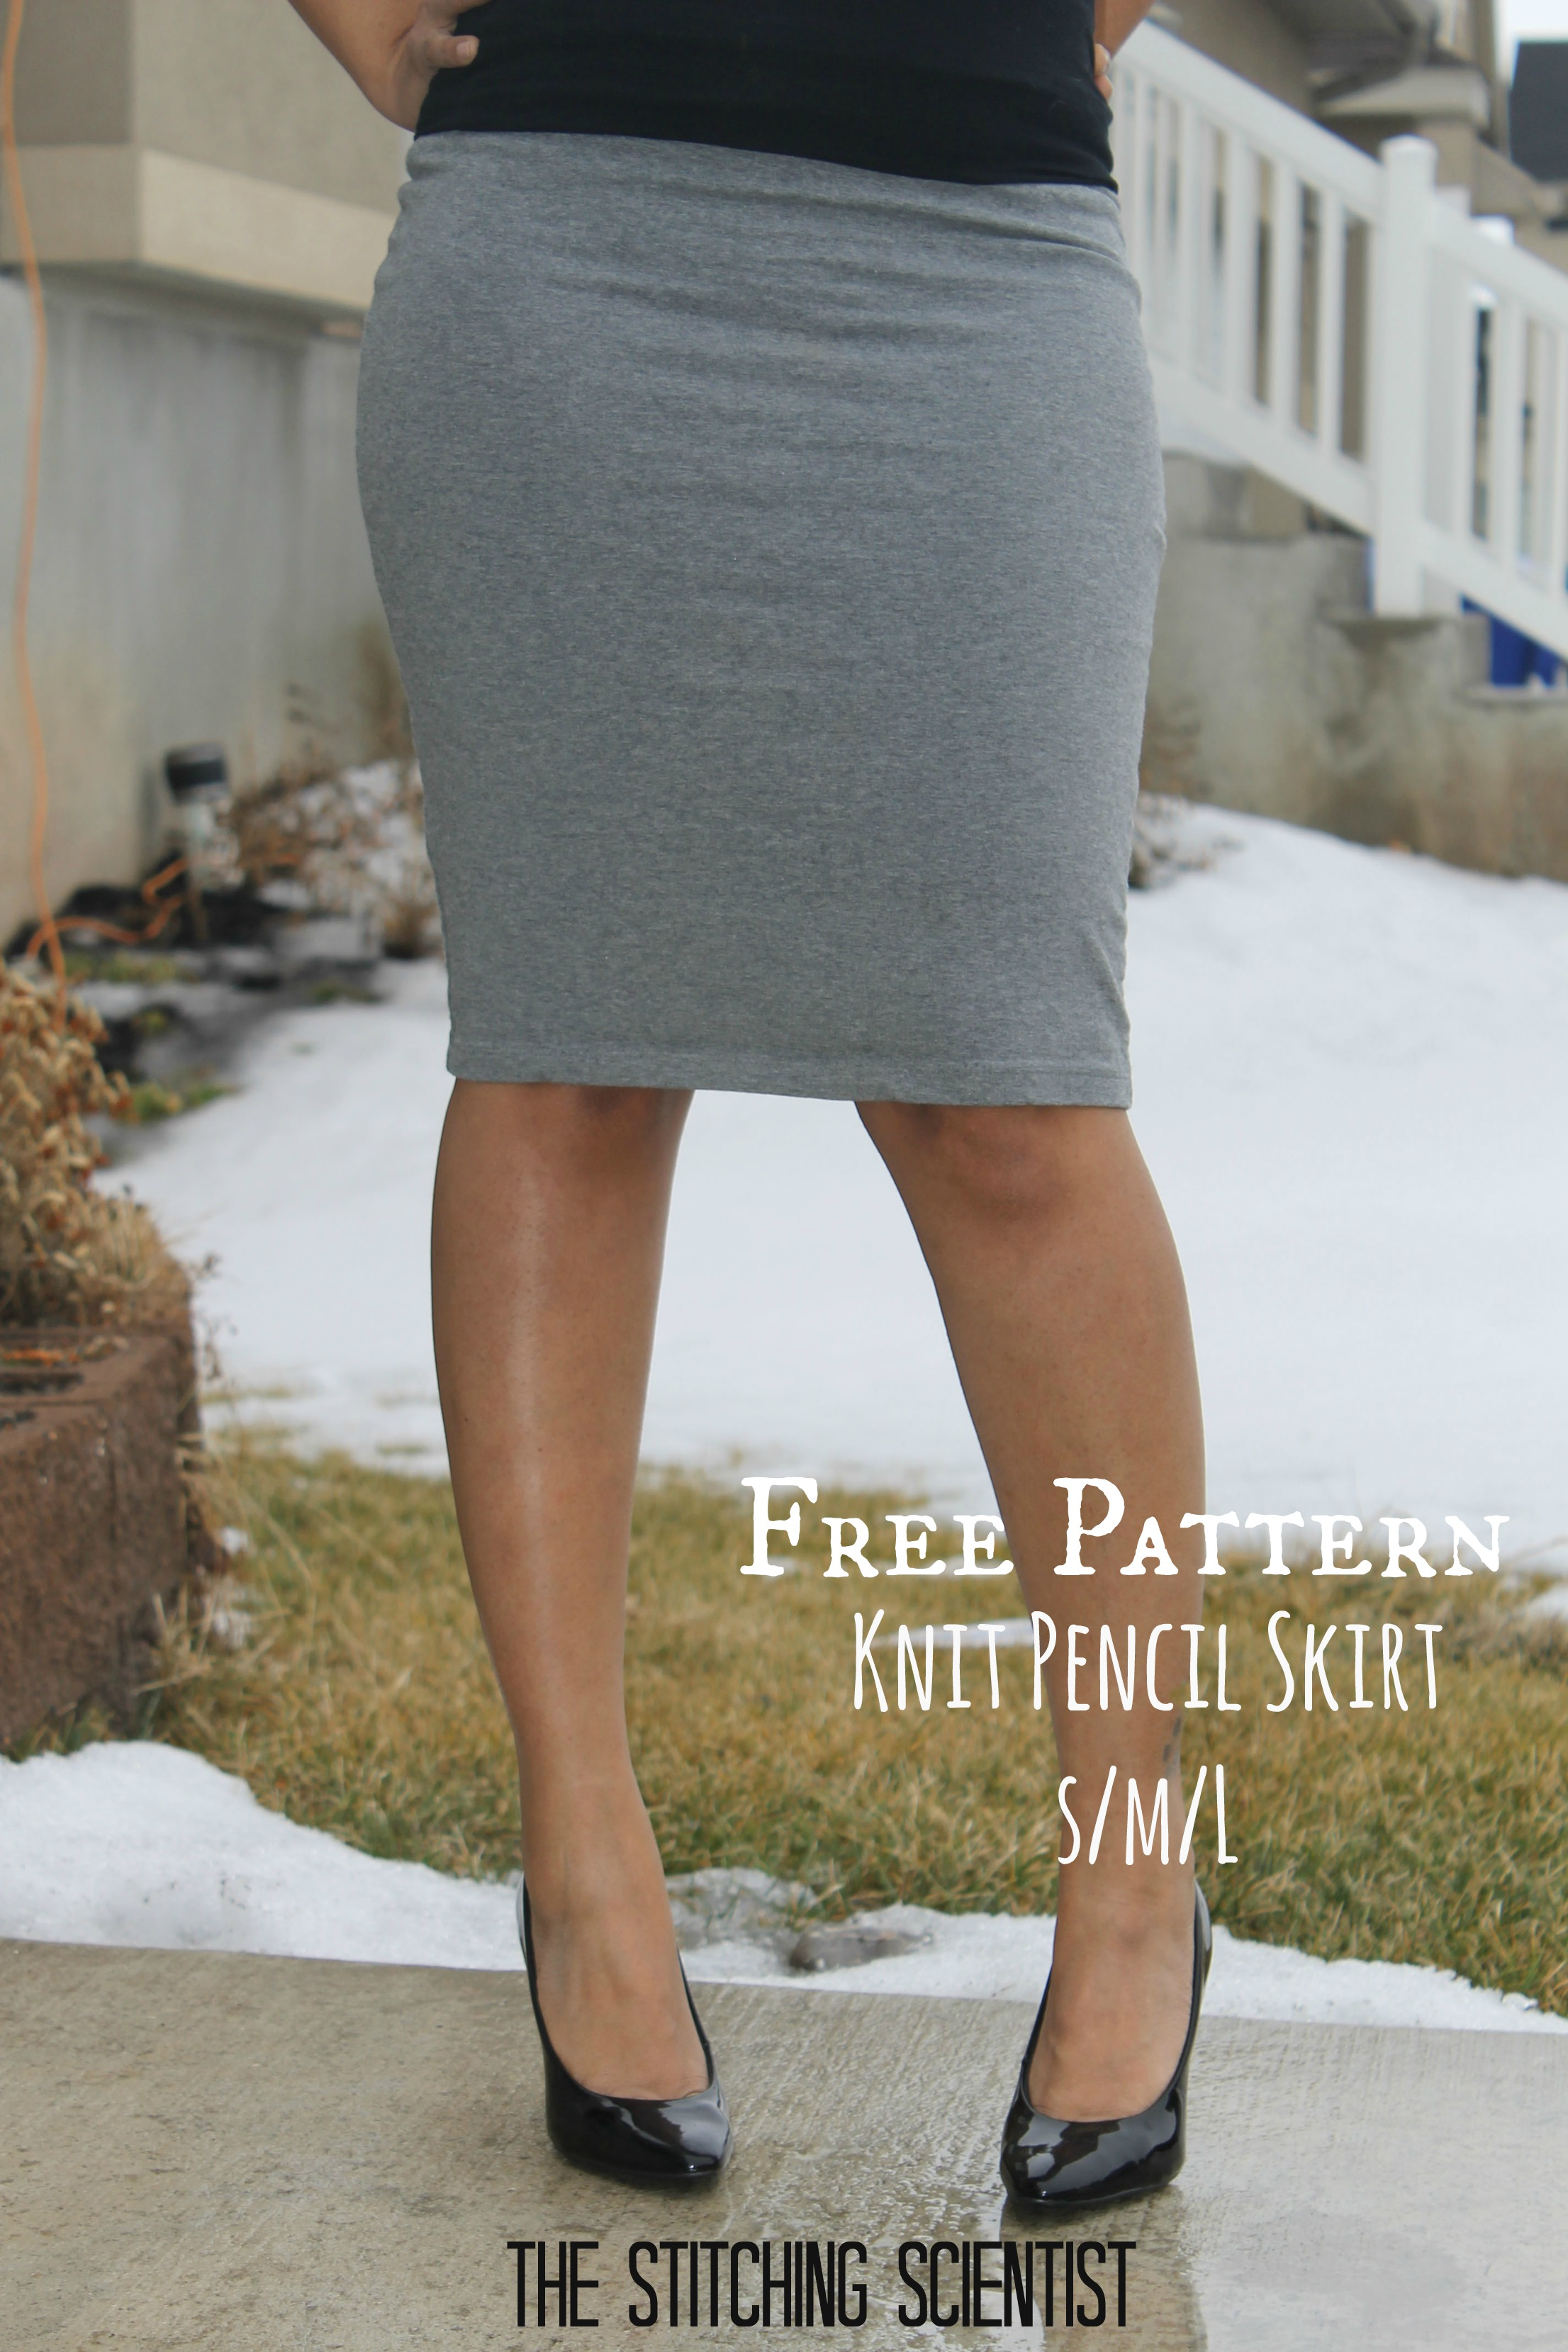 Free Skirt Patterns-Sexy Knit Pencil Skirt The Stitching Scientist